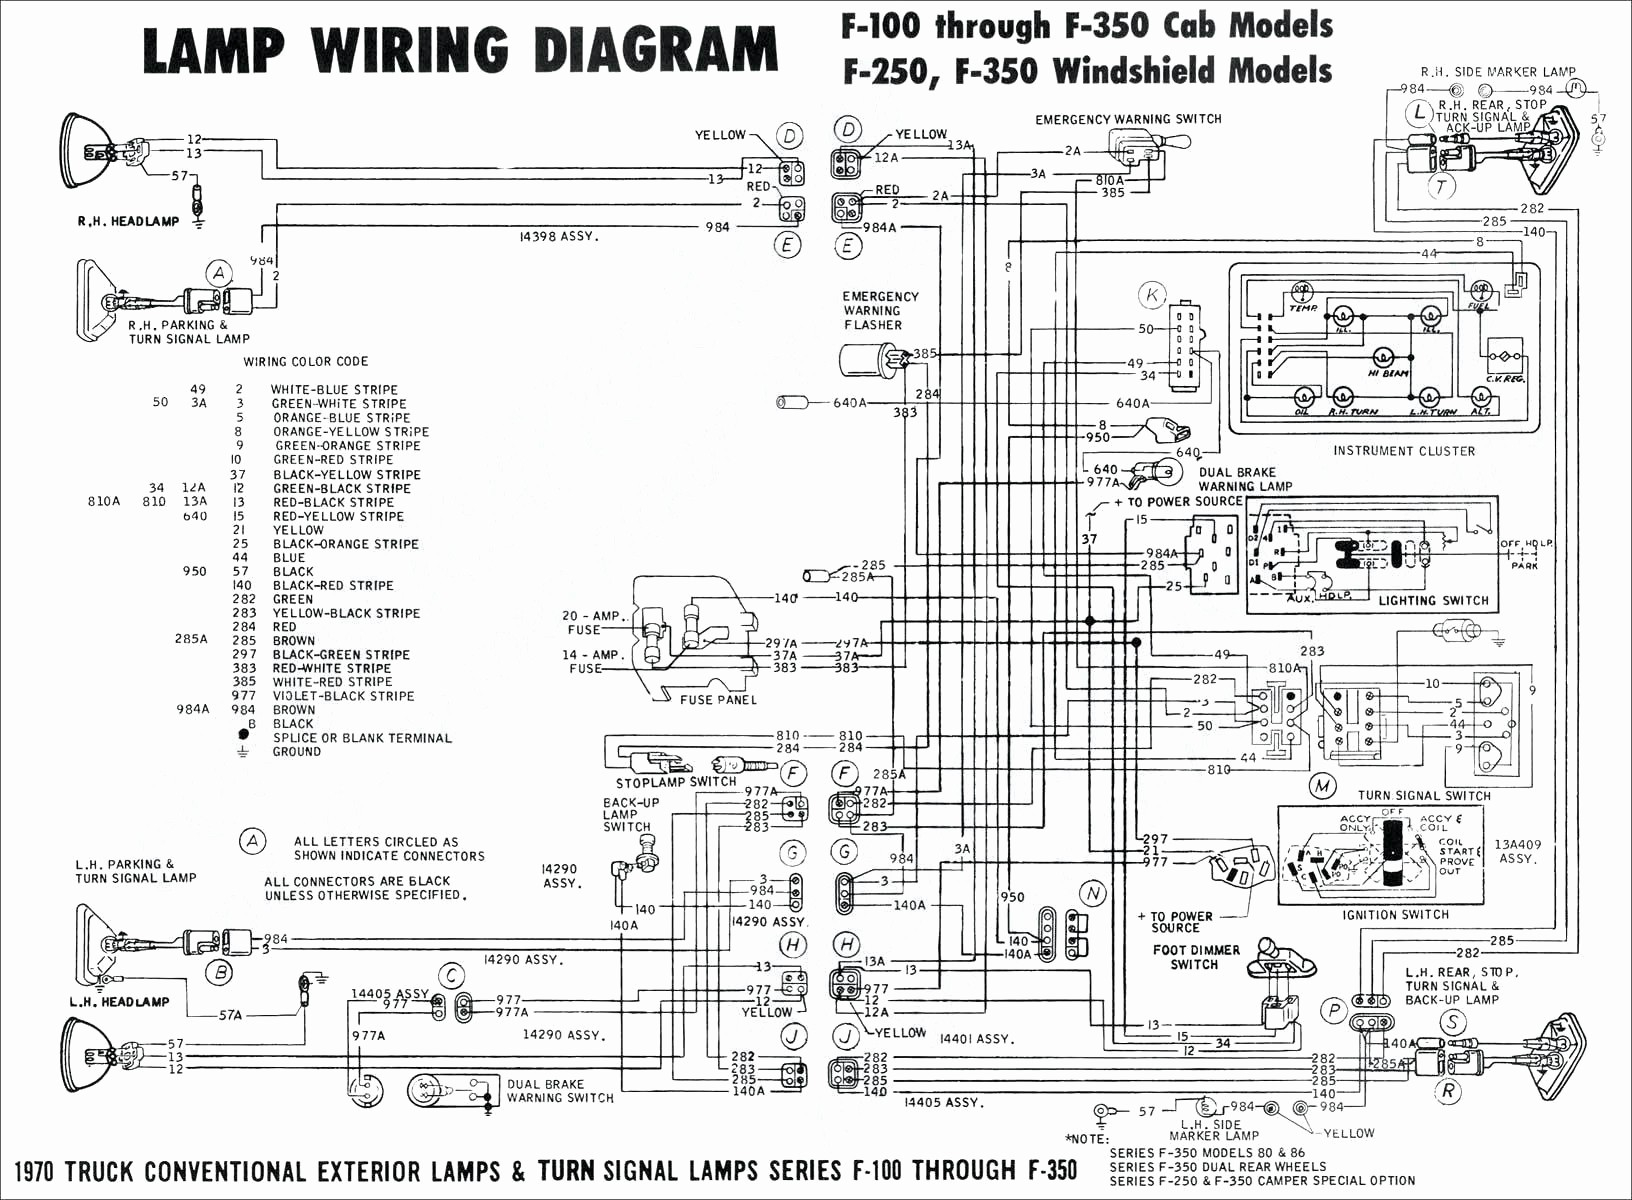 Swell Piaa Wiring Diagram Basic Electronics Wiring Diagram Wiring Digital Resources Llinedefiancerspsorg